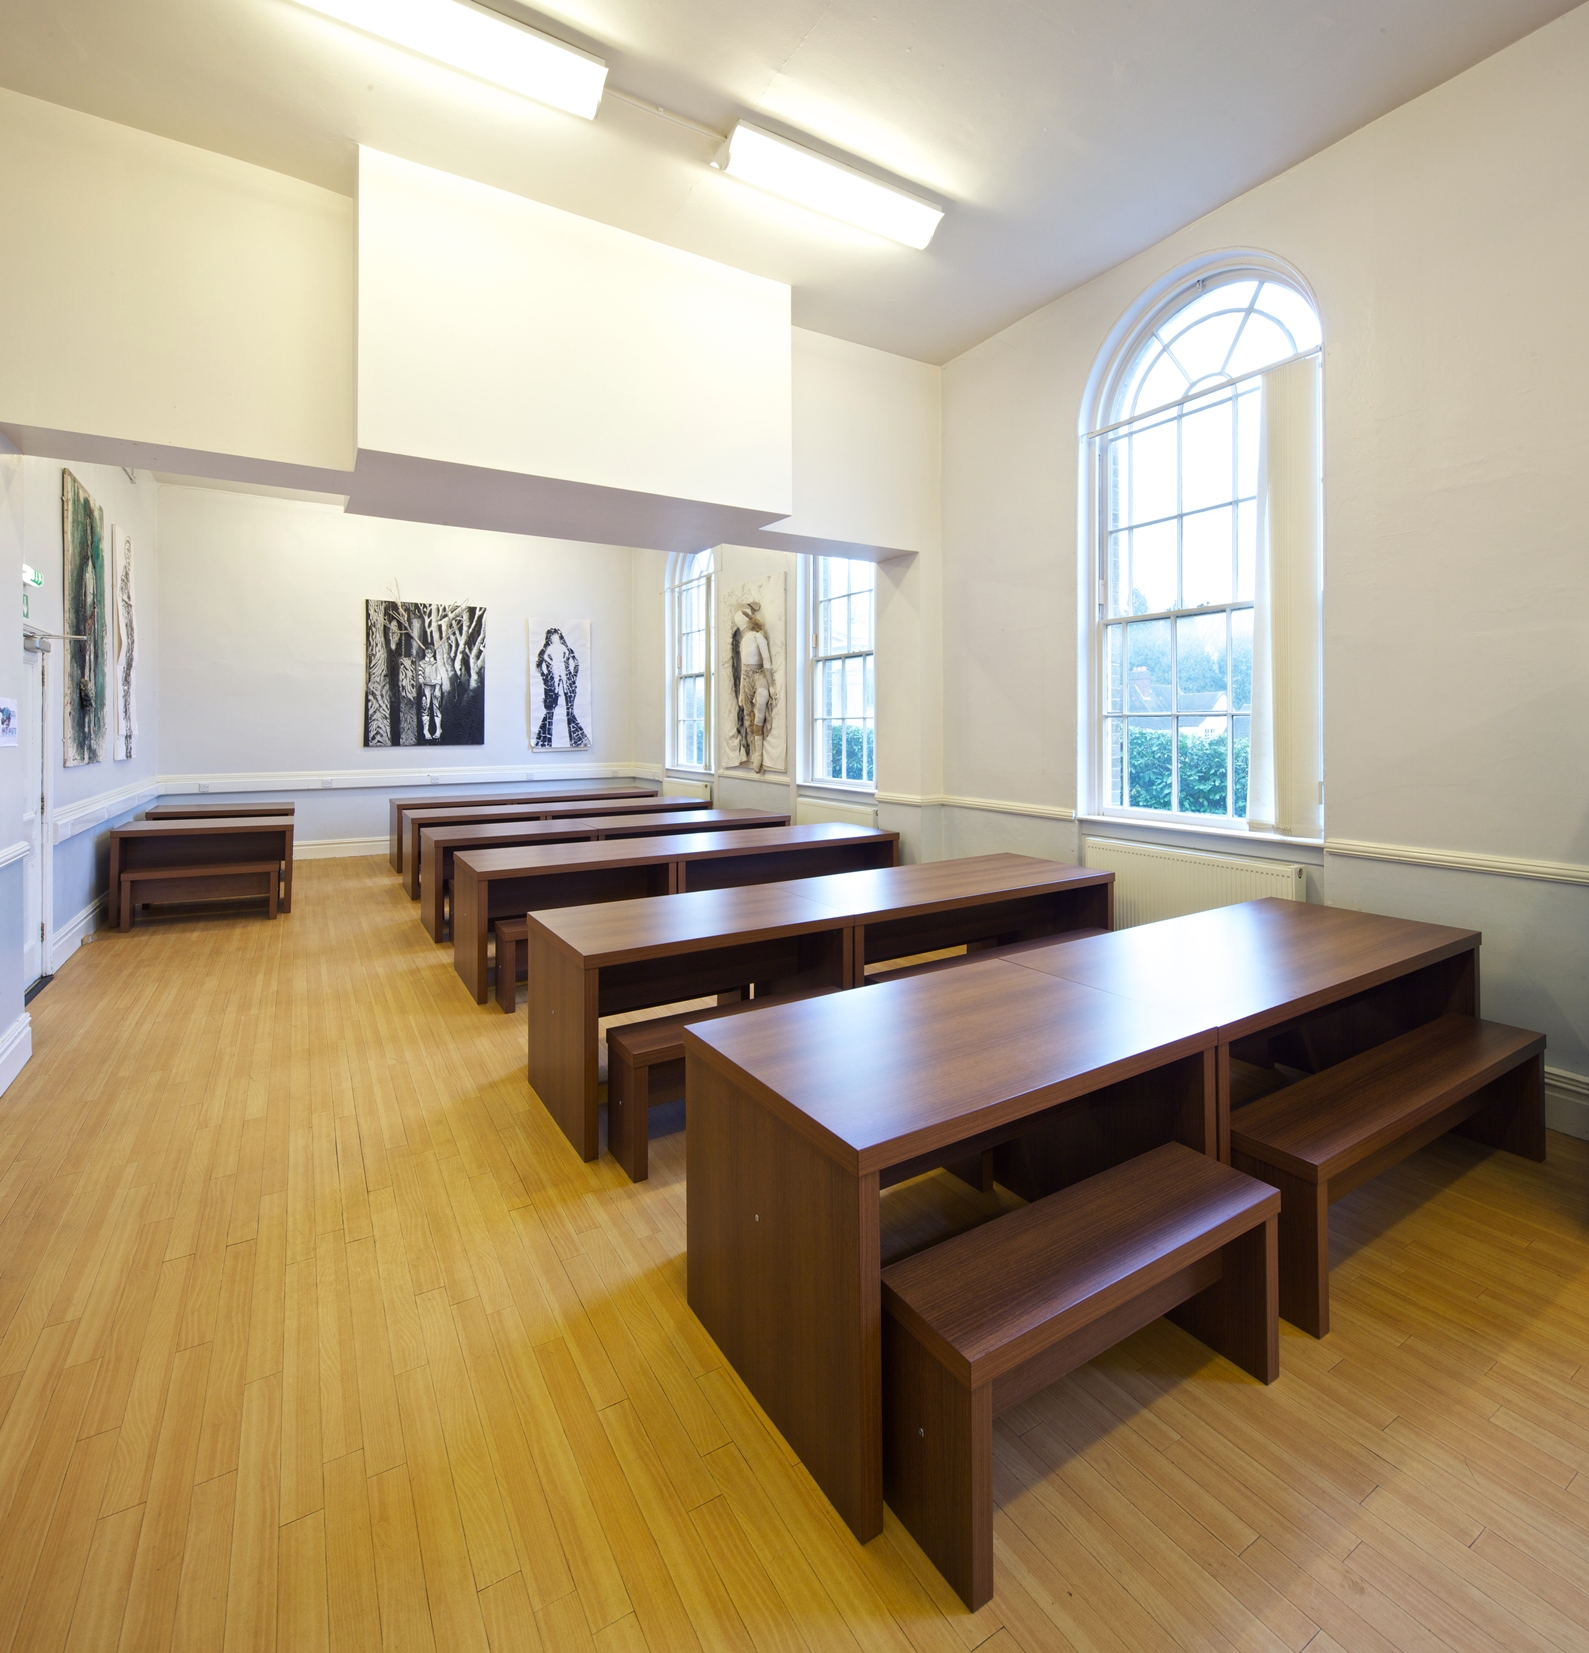 Cafe-Breakout-Tables-IMAGE3